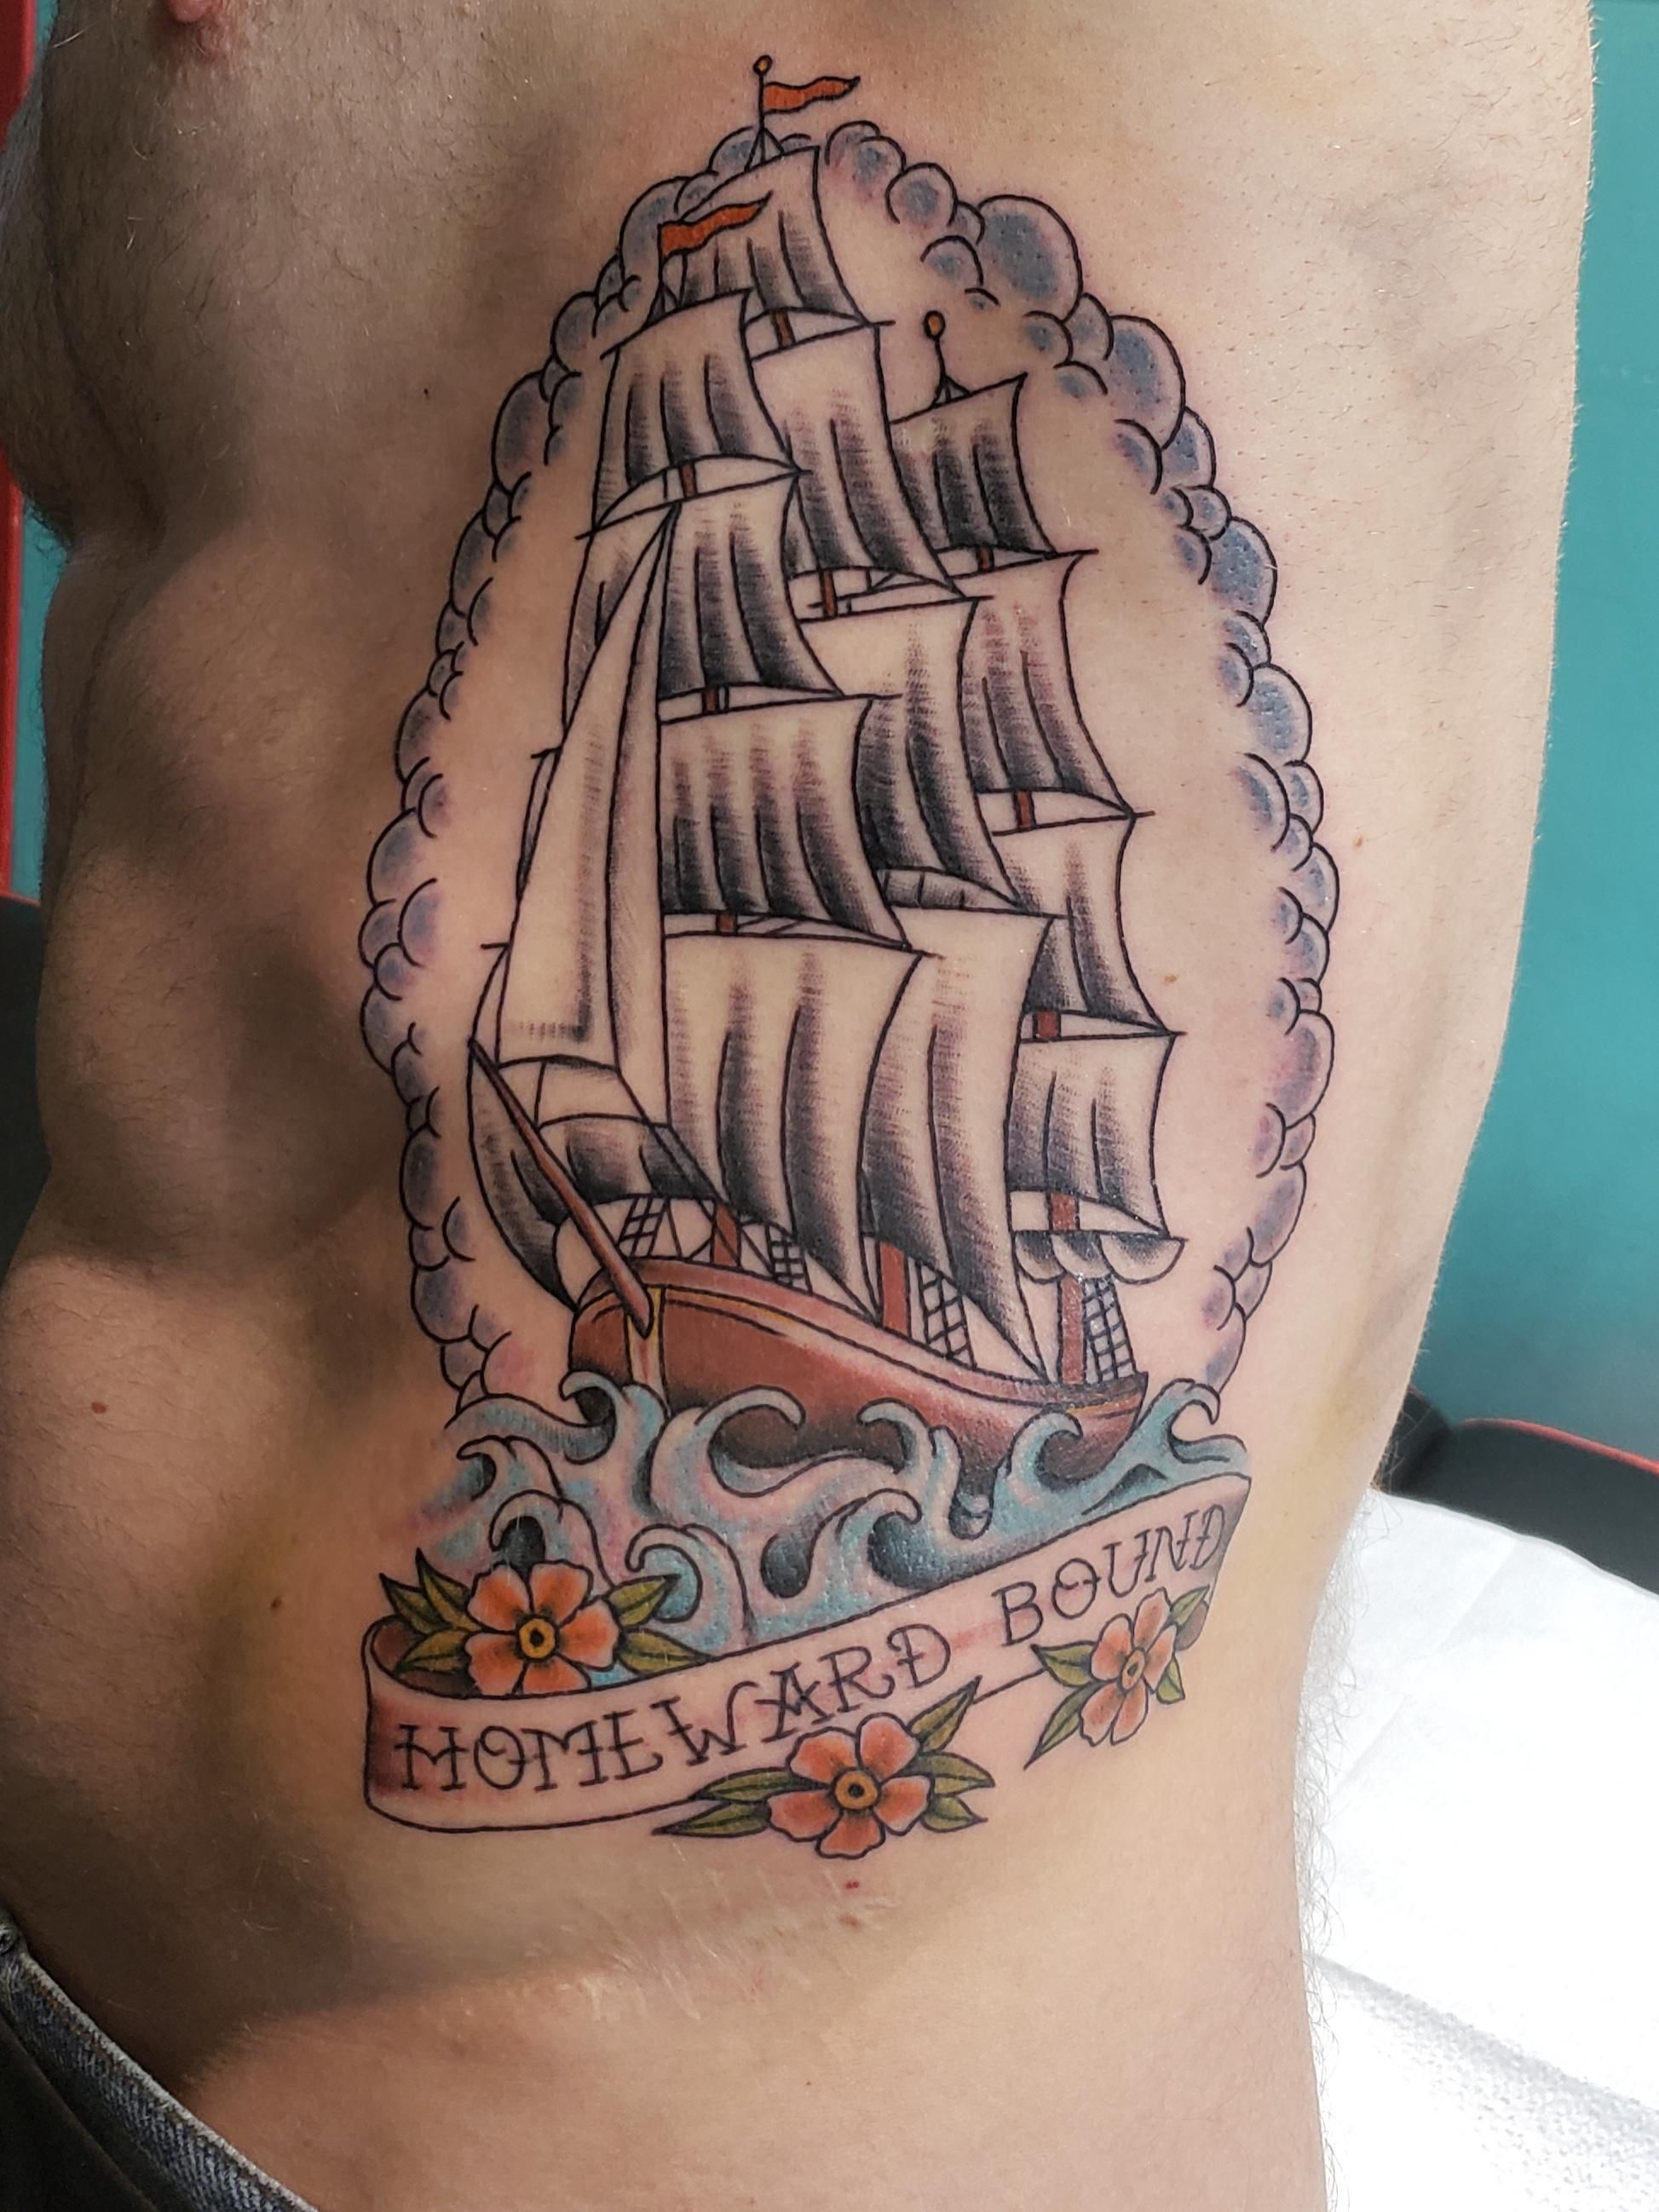 Homeward bound done by dan at electric ladyland in new